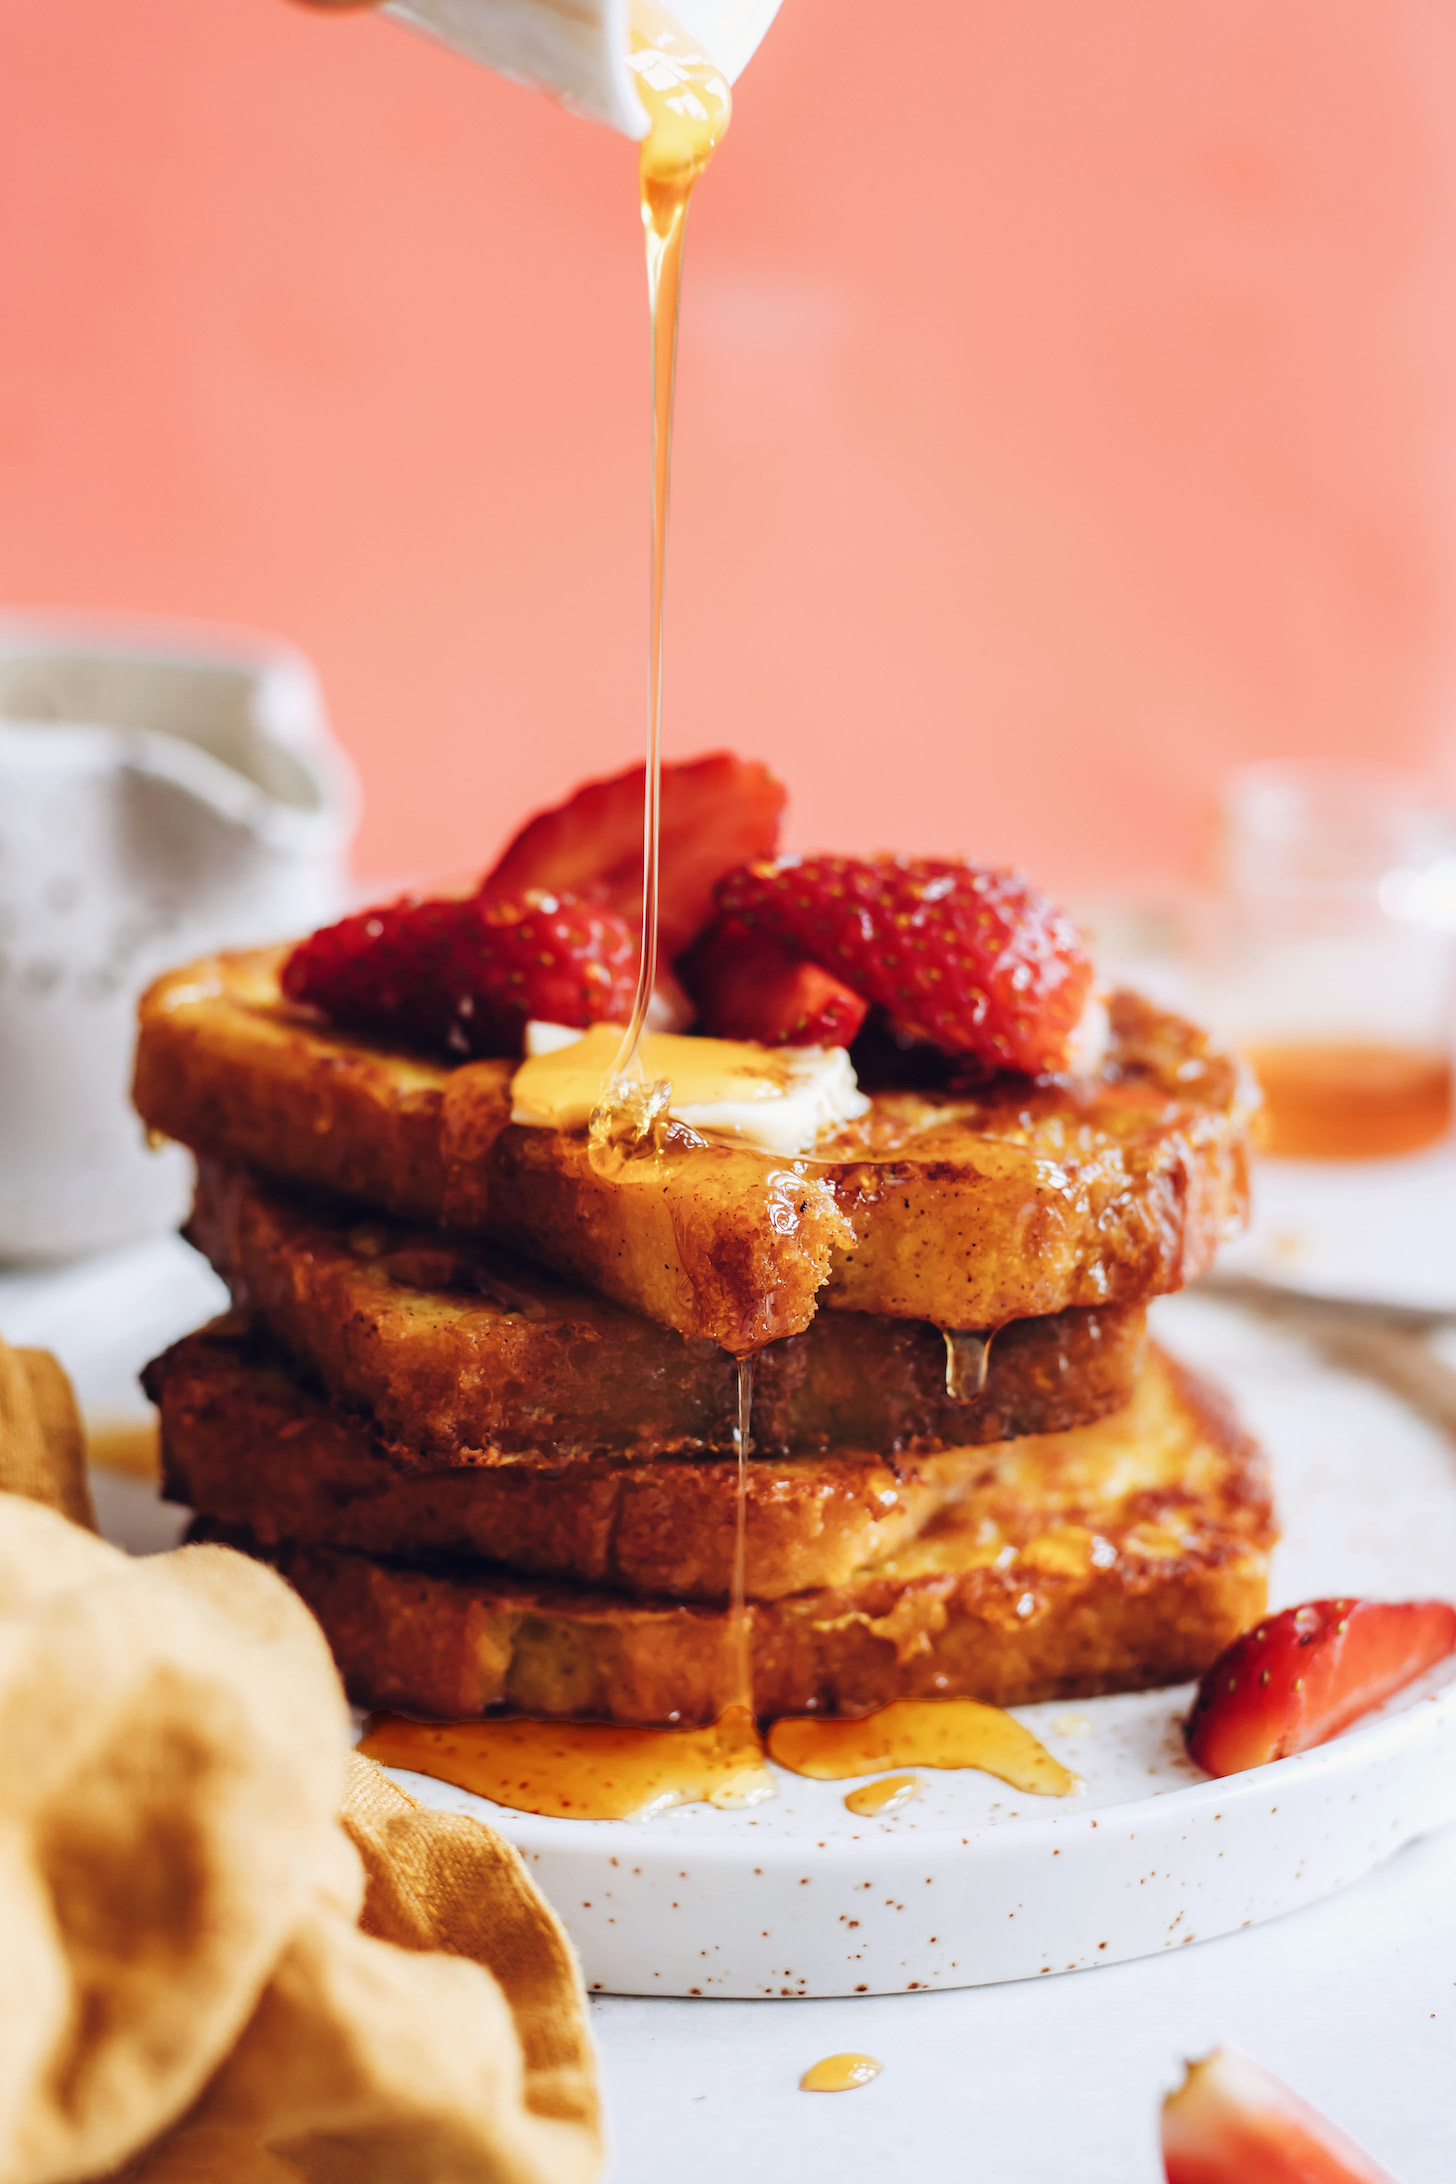 Drizzling slices of vegan French toast with maple syrup